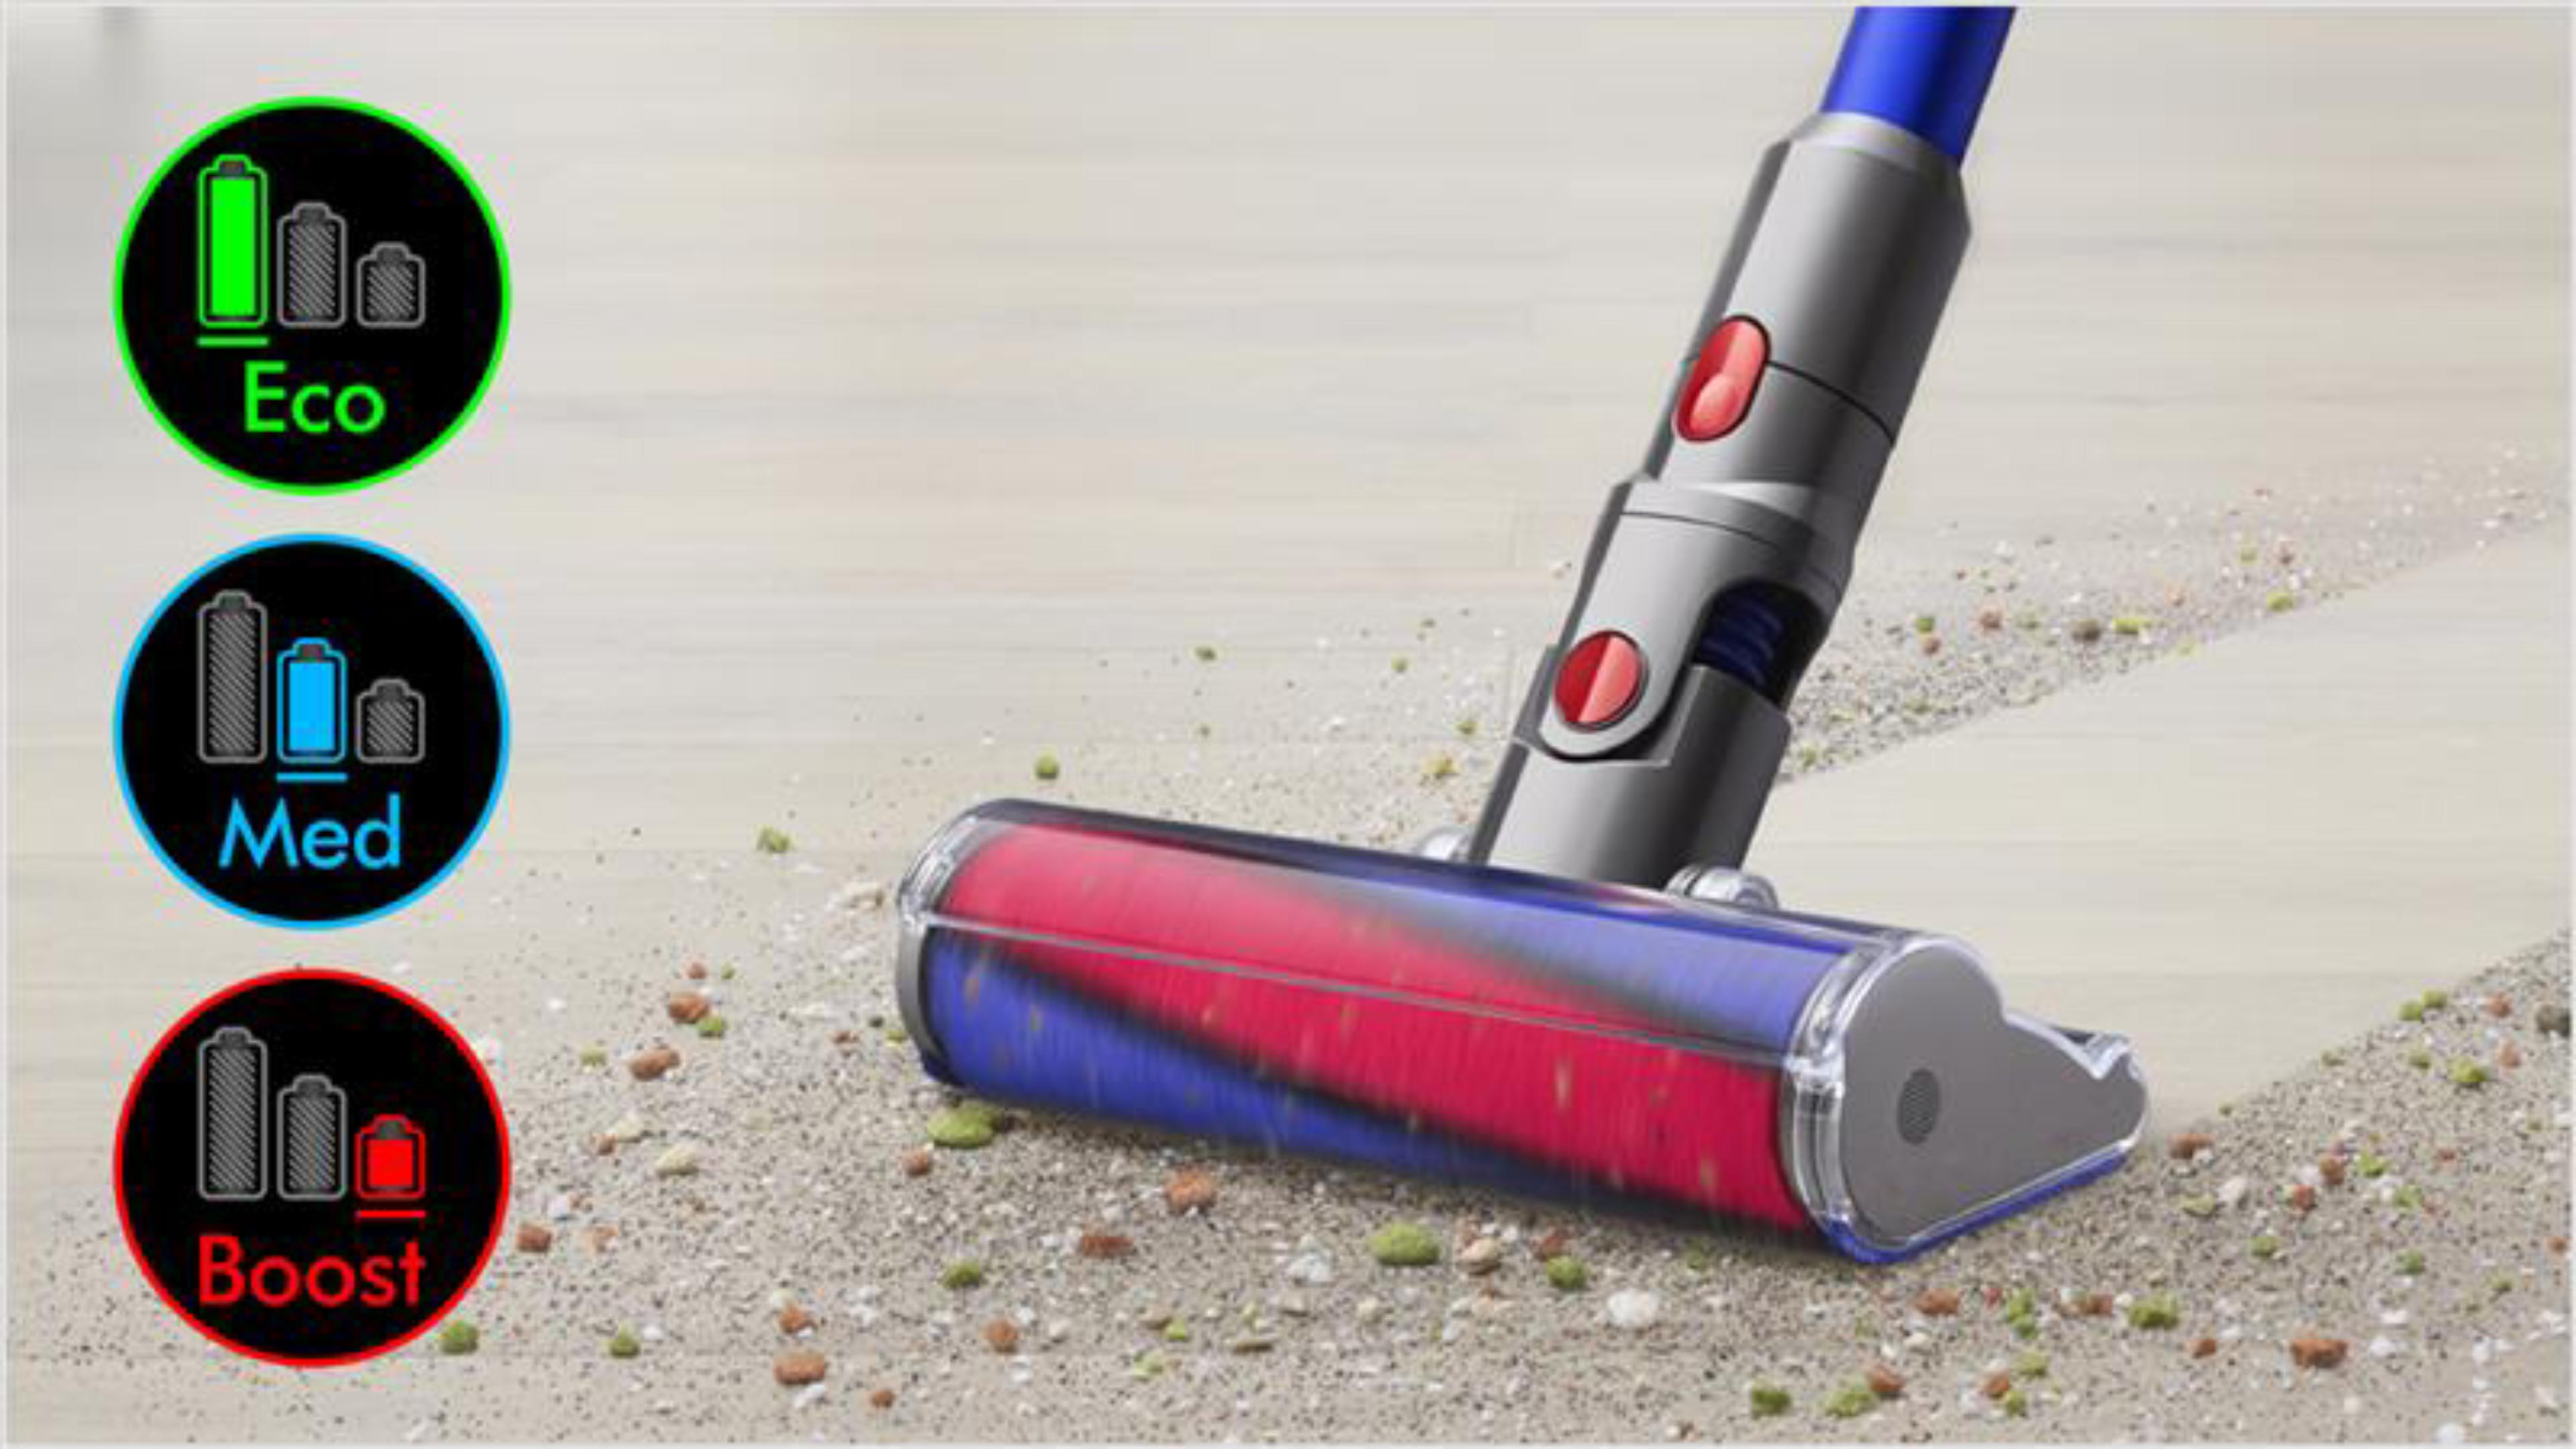 Dyson V11™ vacuum LCD screen showing countdown